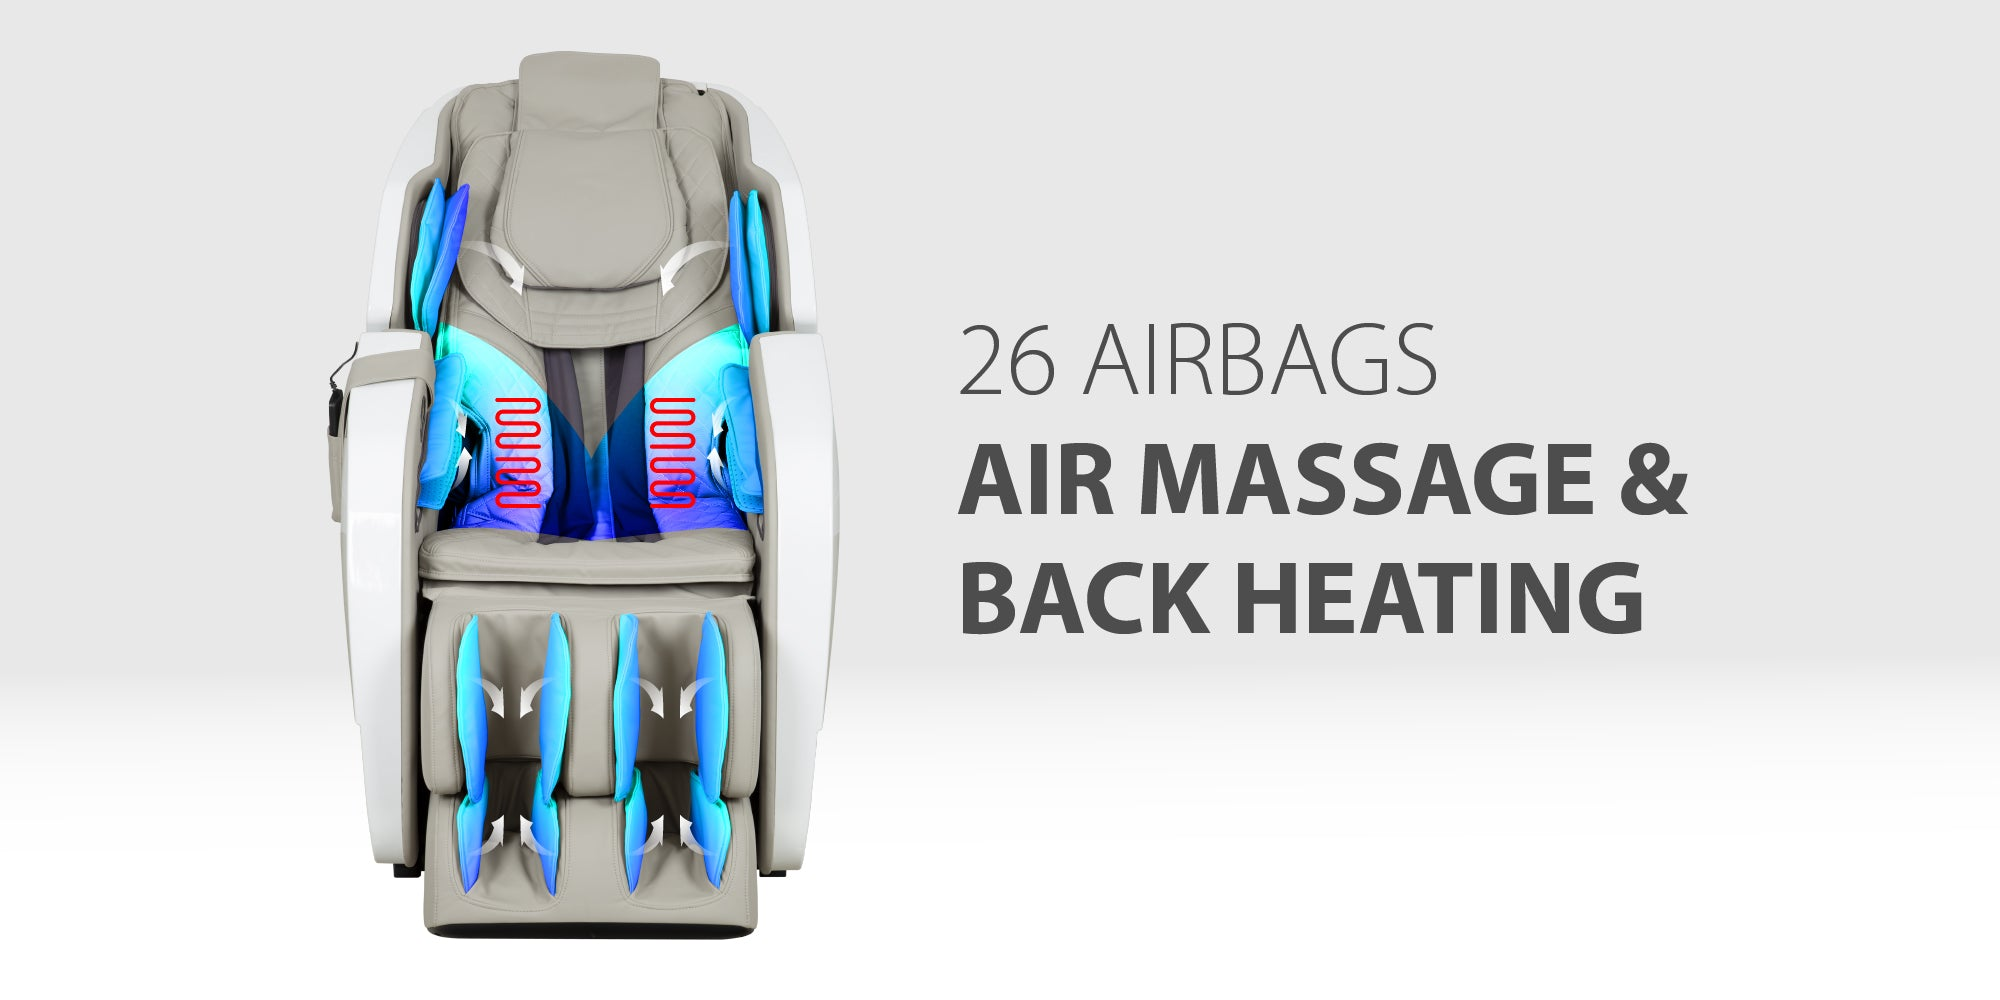 Titan Pro Omega 3D Massage Chair - 26 airbag massage and back heating